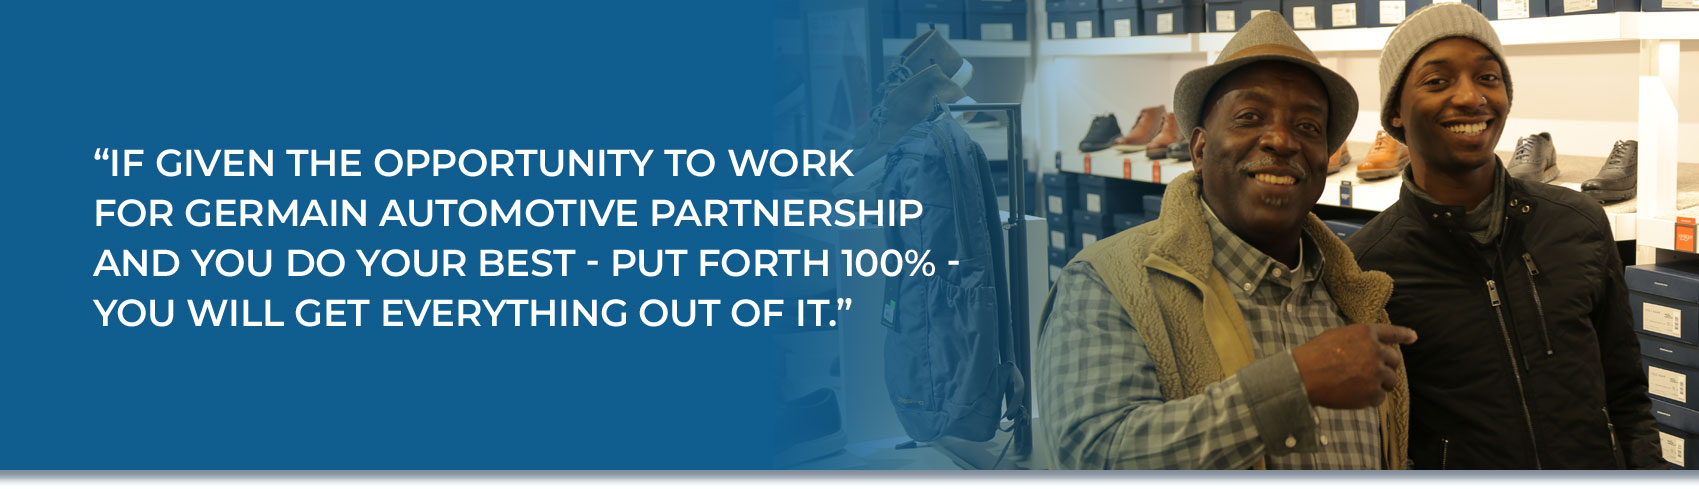 Quote - If given the opportunity to work for Germain Automotive Partnership and you do your best - Put forth 100% - You will get everything out of it.